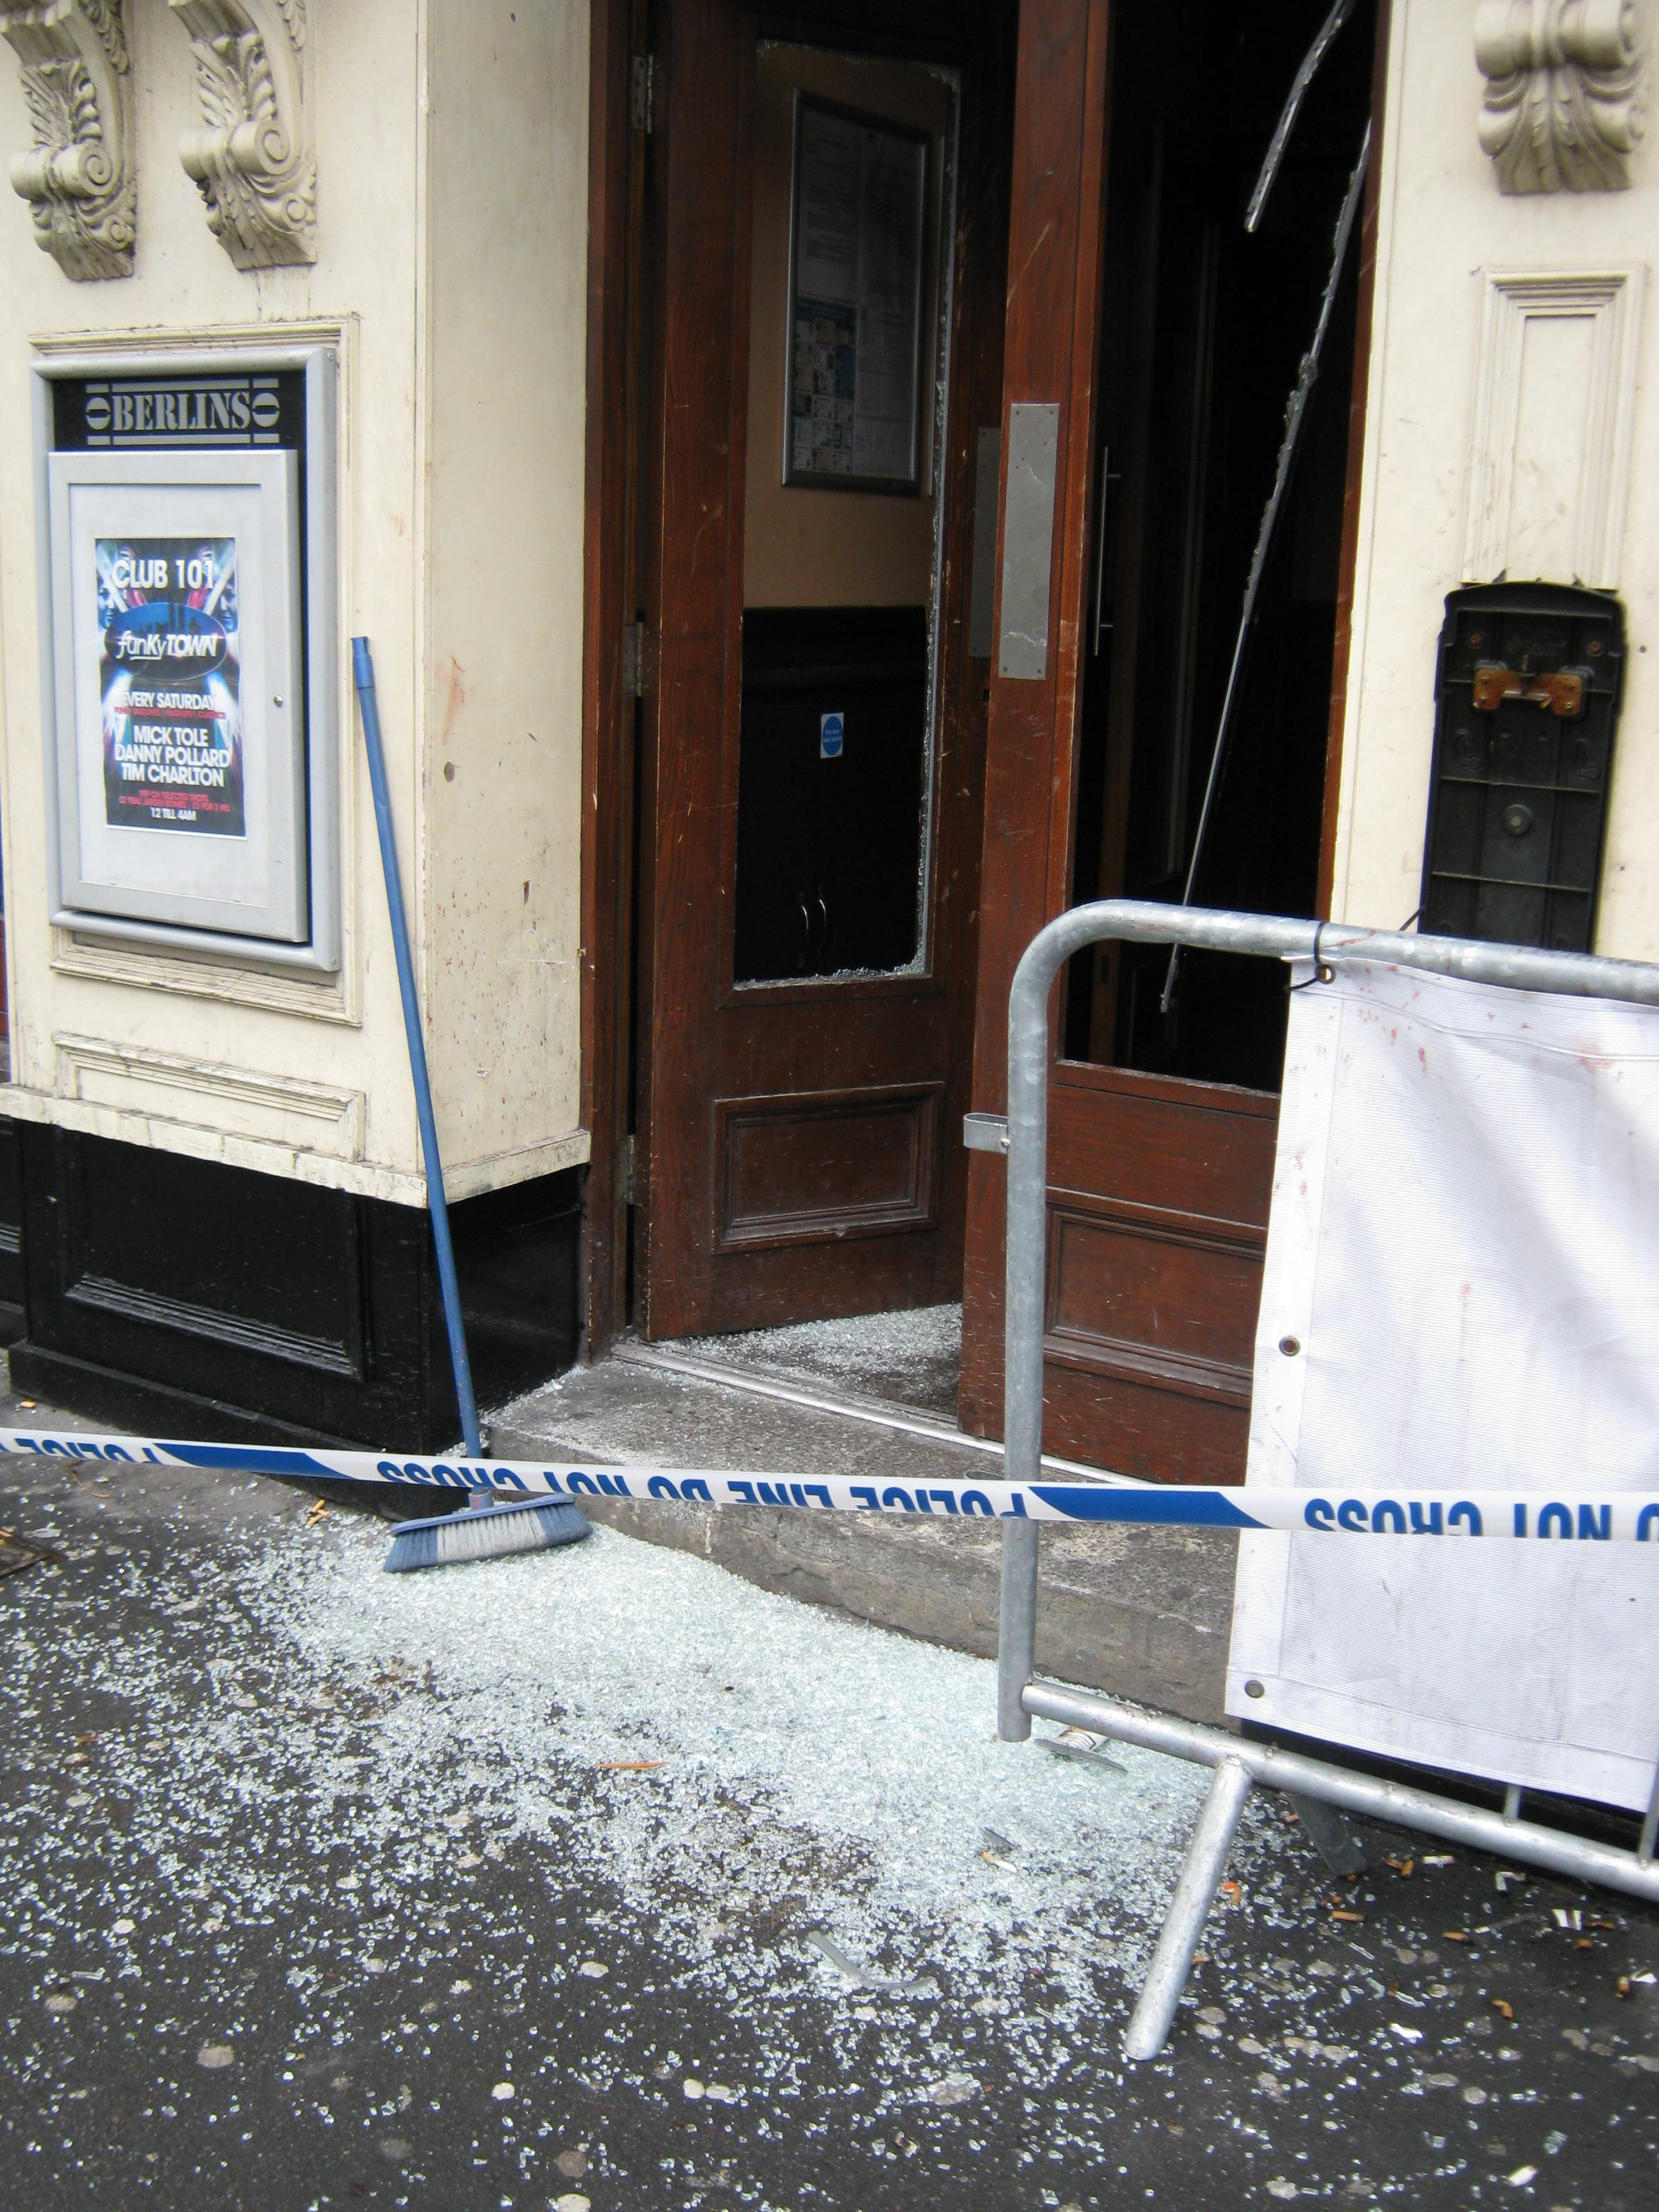 Man is injured in Keighley bar incident